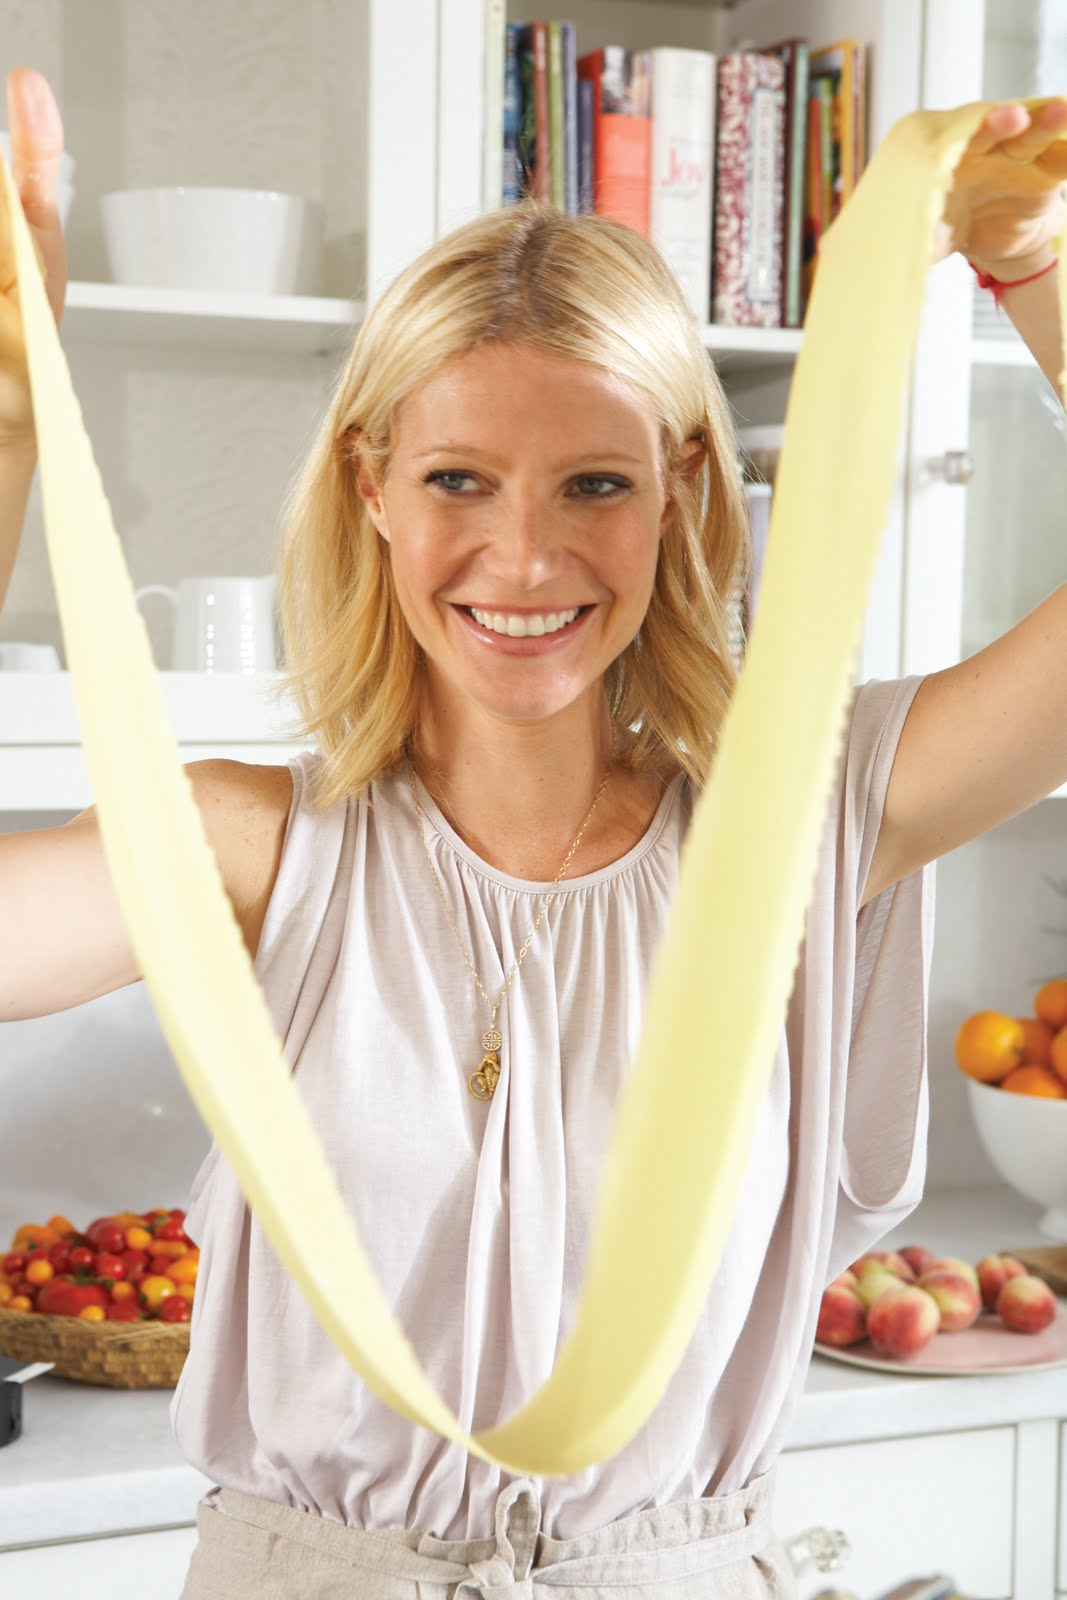 gwyneth paltrow notes from my kitchen table chiclittlebaby